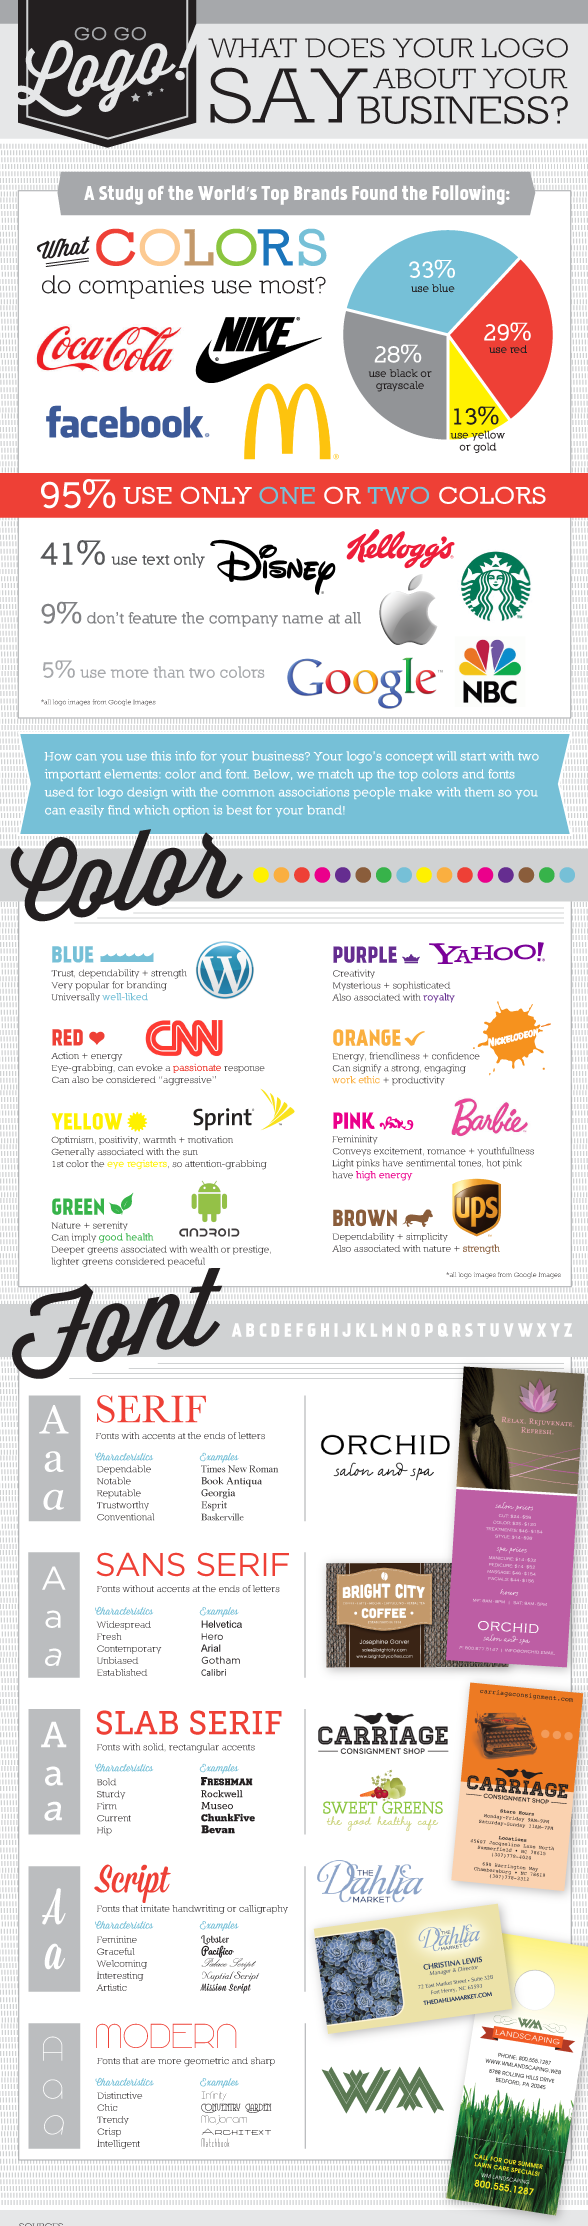 what-your-logo-says-about-your-business